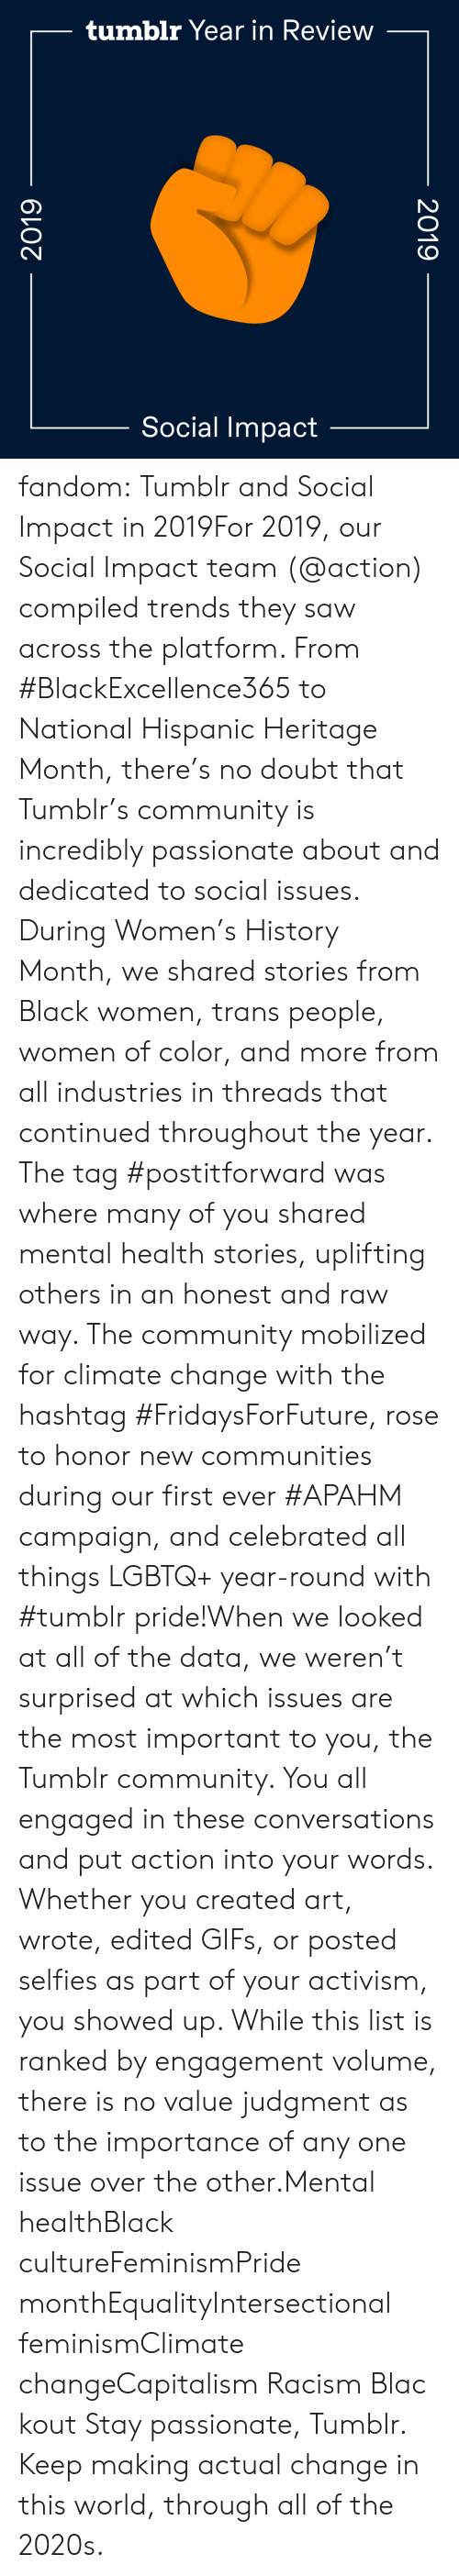 actual: tumblr Year in Review  Social Impact  2019  2019 fandom:  Tumblr and Social Impact in 2019For 2019, our Social Impact team (@action​) compiled trends they saw across the platform. From #BlackExcellence365 to National Hispanic Heritage Month, there's no doubt that Tumblr's community is incredibly passionate about and dedicated to social issues. During Women's History Month, we shared stories from Black women, trans people, women of color, and more from all industries in threads that continued throughout the year. The tag #postitforward was where many of you shared mental health stories, uplifting others in an honest and raw way. The community mobilized for climate change with the hashtag #FridaysForFuture, rose to honor new communities during our first ever #APAHM campaign, and celebrated all things LGBTQ+ year-round with #tumblr pride!When we looked at all of the data, we weren't surprised at which issues are the most important to you, the Tumblr community. You all engaged in these conversations and put action into your words. Whether you created art, wrote, edited GIFs, or posted selfies as part of your activism, you showed up. While this list is ranked by engagement volume, there is no value judgment as to the importance of any one issue over the other.Mental healthBlack cultureFeminismPride monthEqualityIntersectional feminismClimate changeCapitalism Racism Blackout Stay passionate, Tumblr. Keep making actual change in this world, through all of the 2020s.